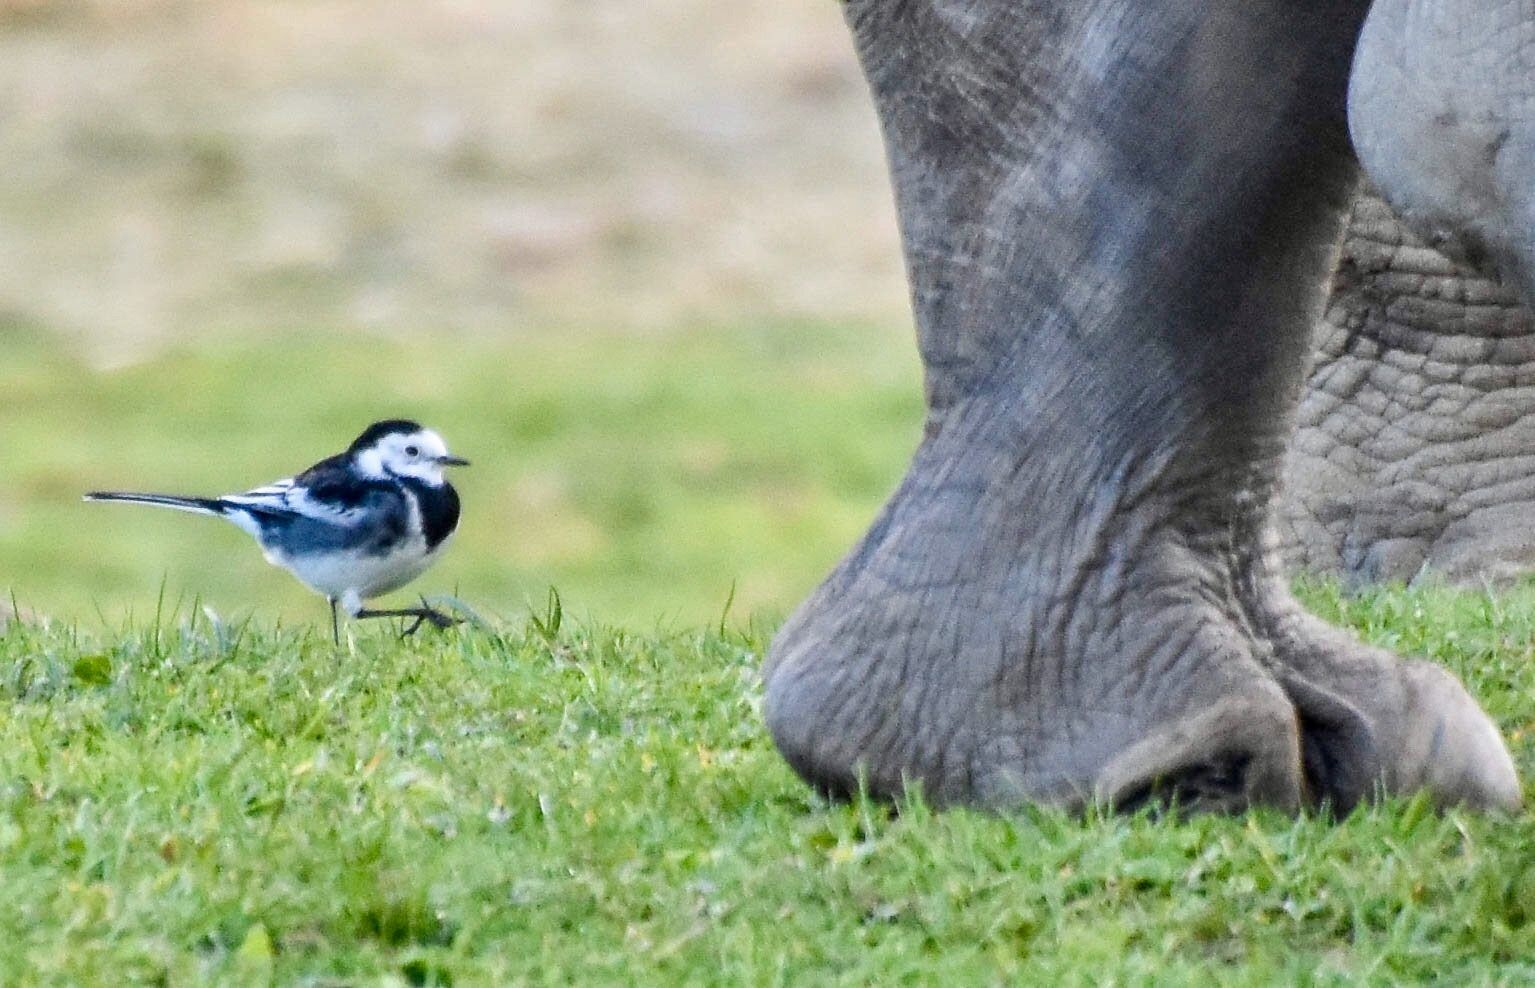 Julie Dickson gained 2nd place with her photo 'Little Foot Big Foot' (courtesy Cotswold Wildlife Park).